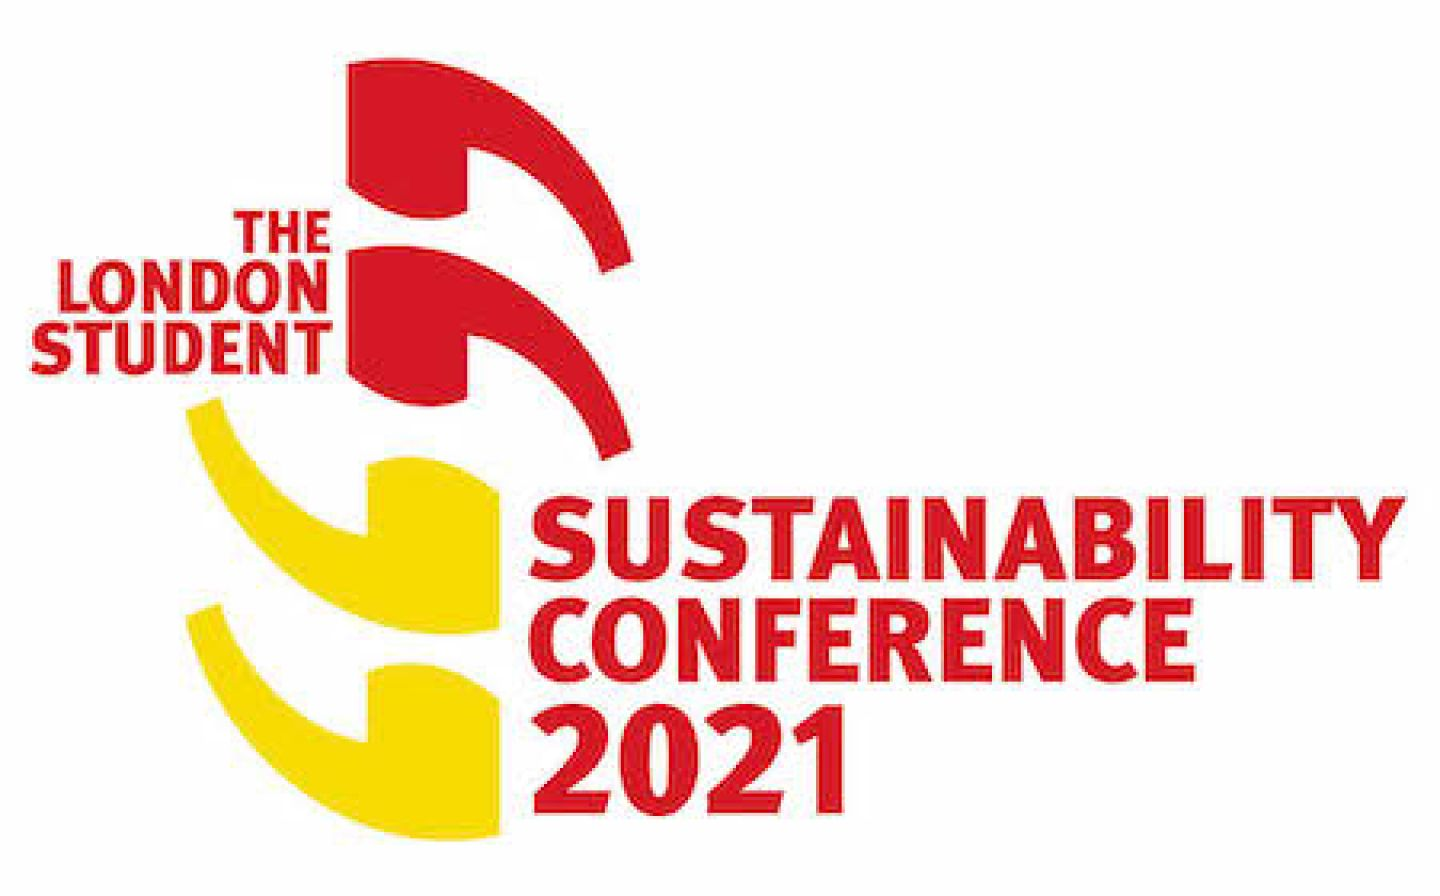 The London Student Sustainability Conference 2021 logo